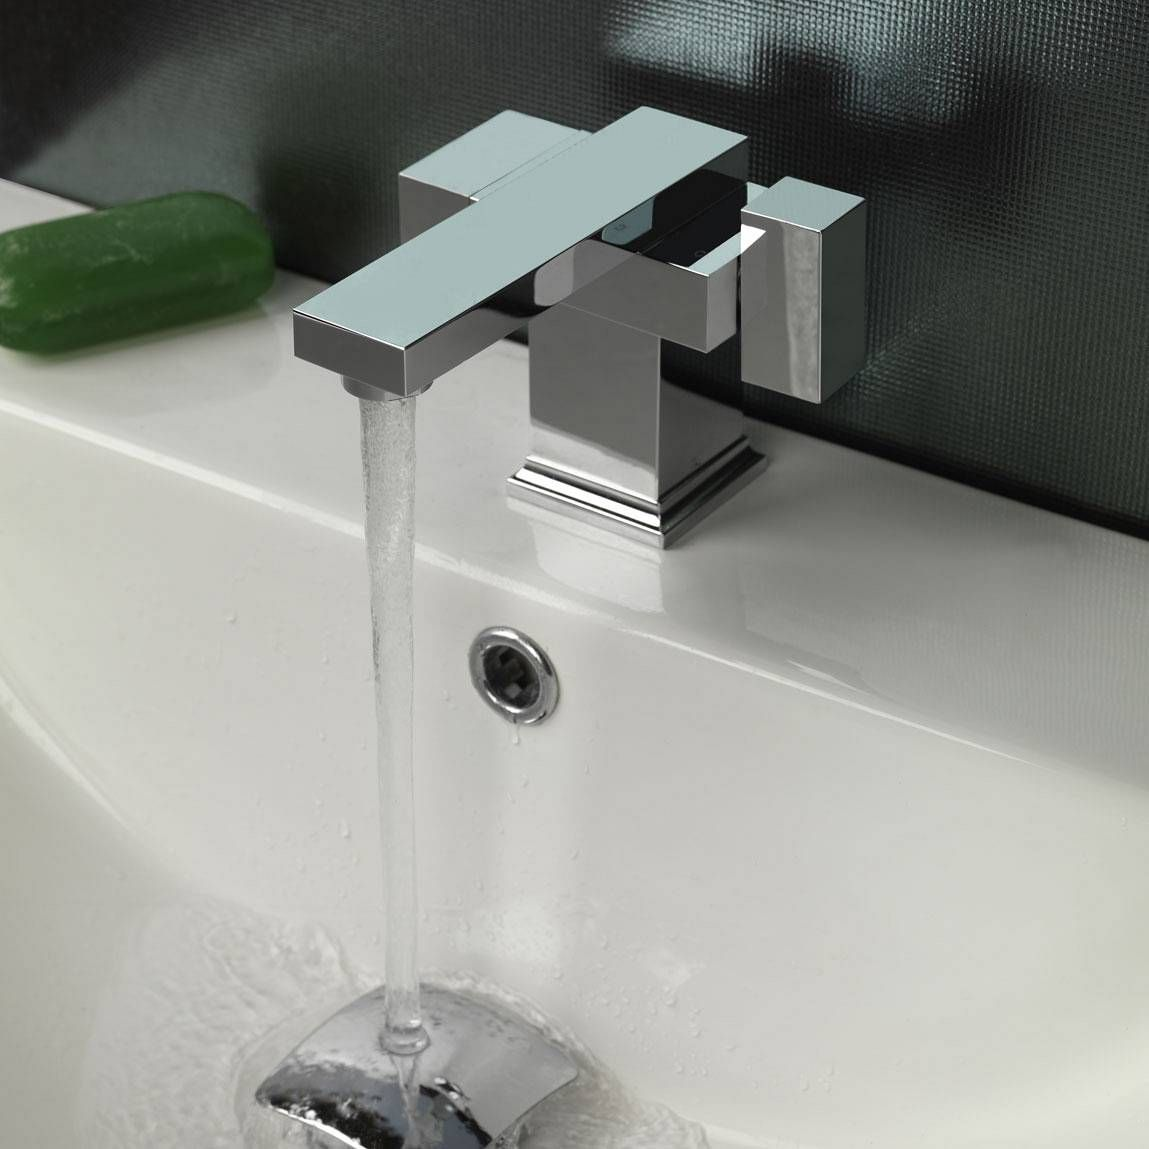 Revolve Basin Mixer | Bathroom ideas | Pinterest | Basin mixer ...